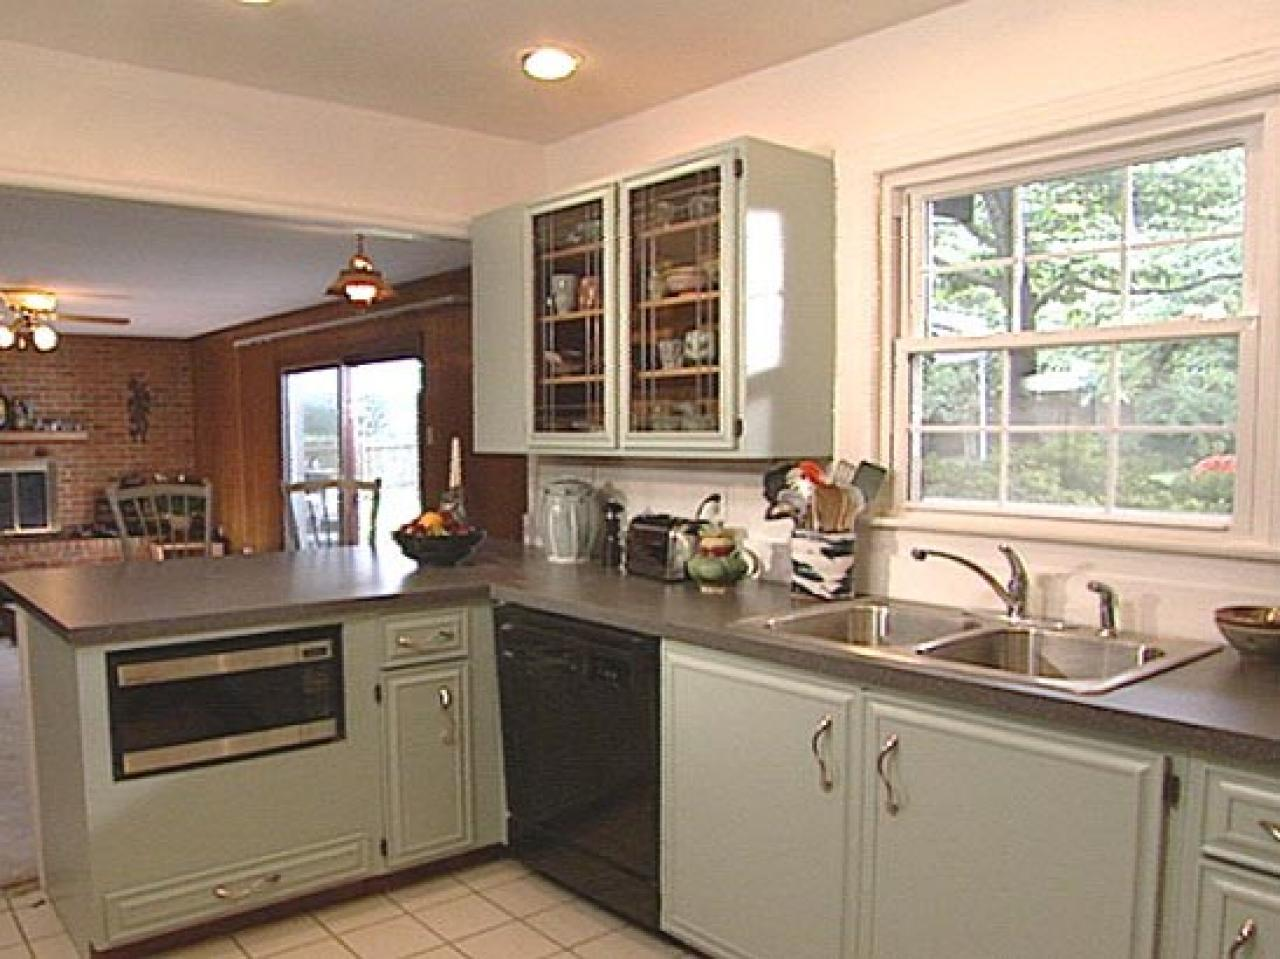 painted kitchen cabinets how to paint old kitchen cabinets TUOIJWC